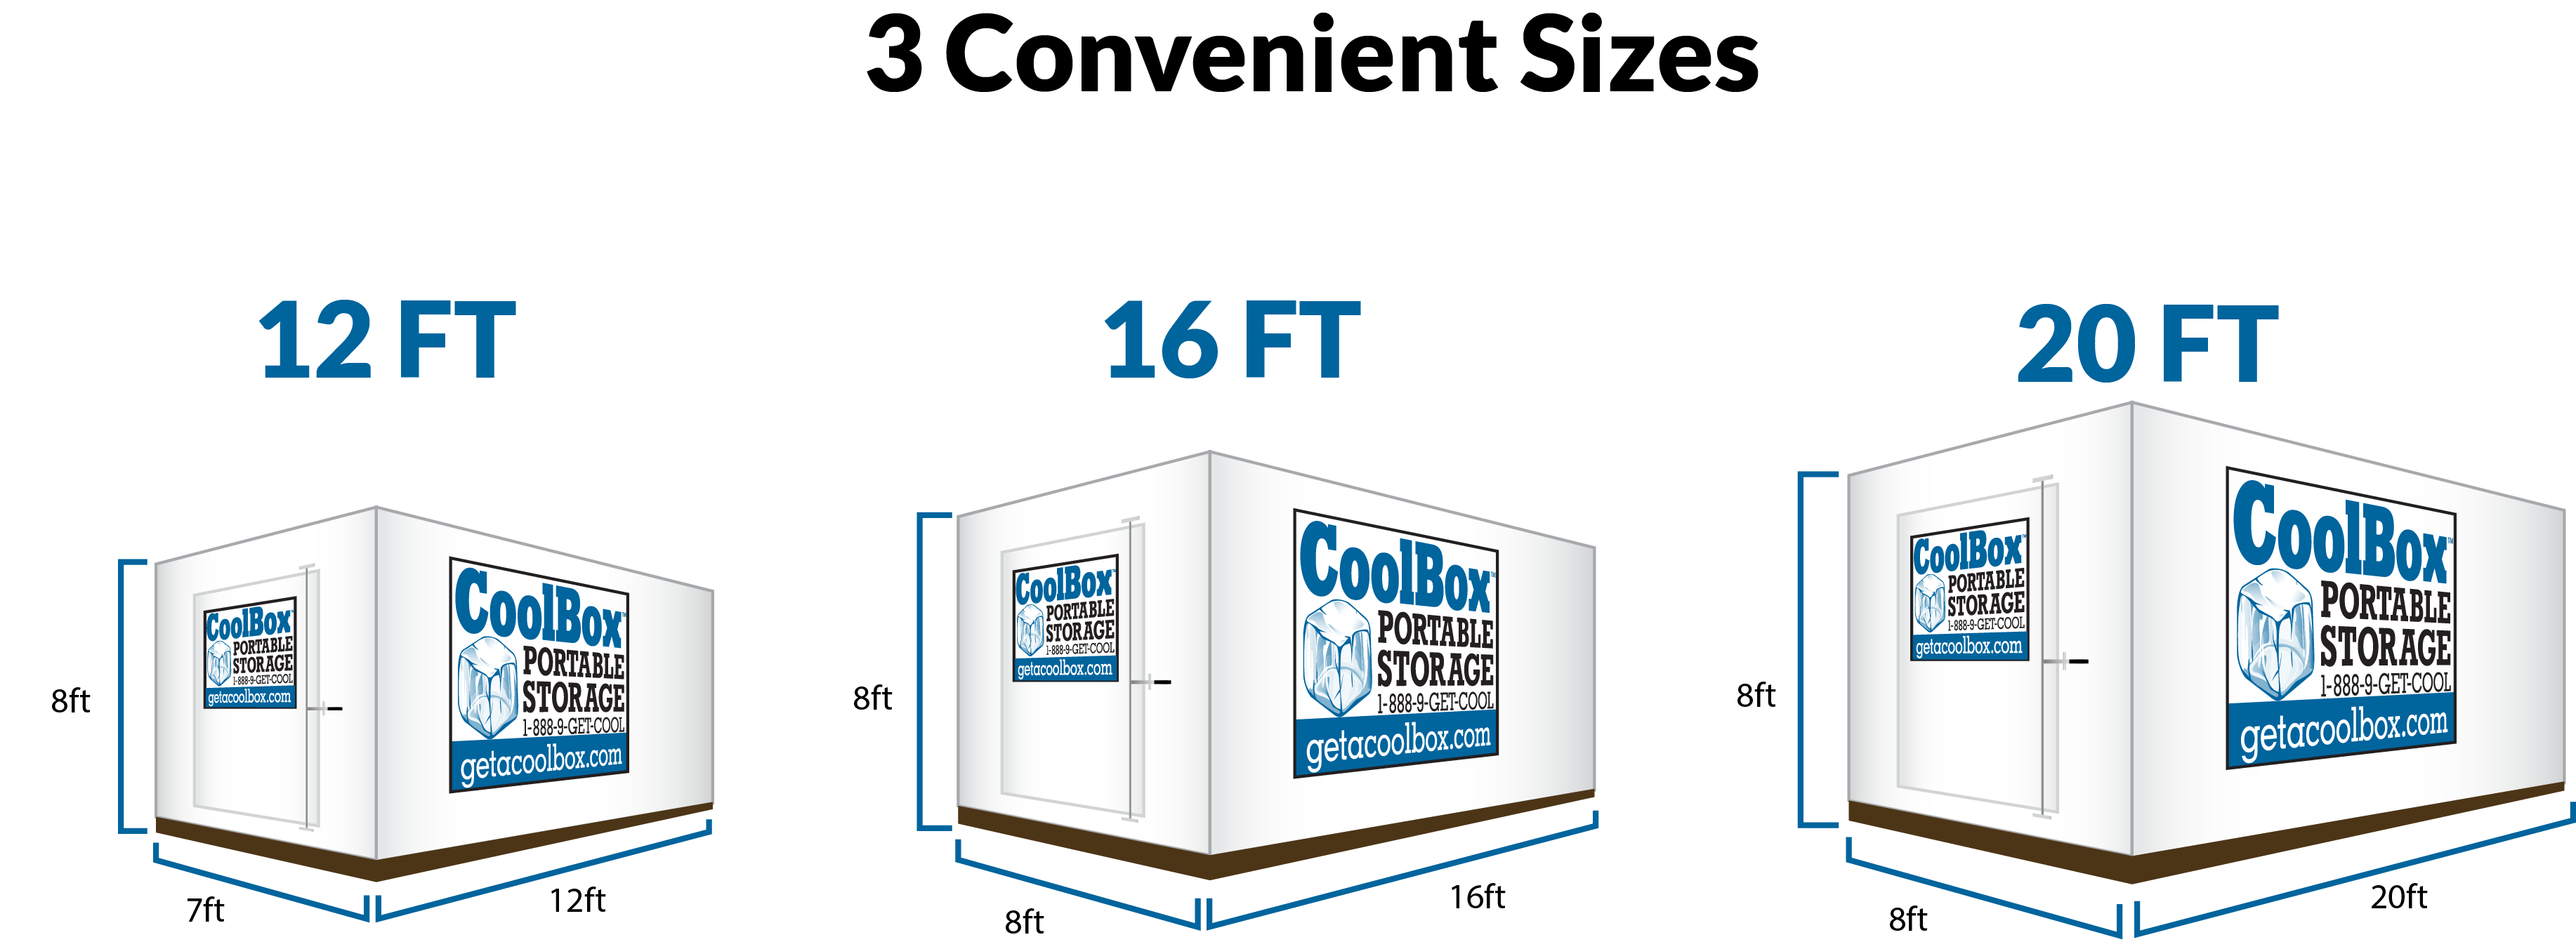 Portable Storage Sizes  sc 1 th 136 & Cool Box Storage Containers | Rent Portable Storage Containers